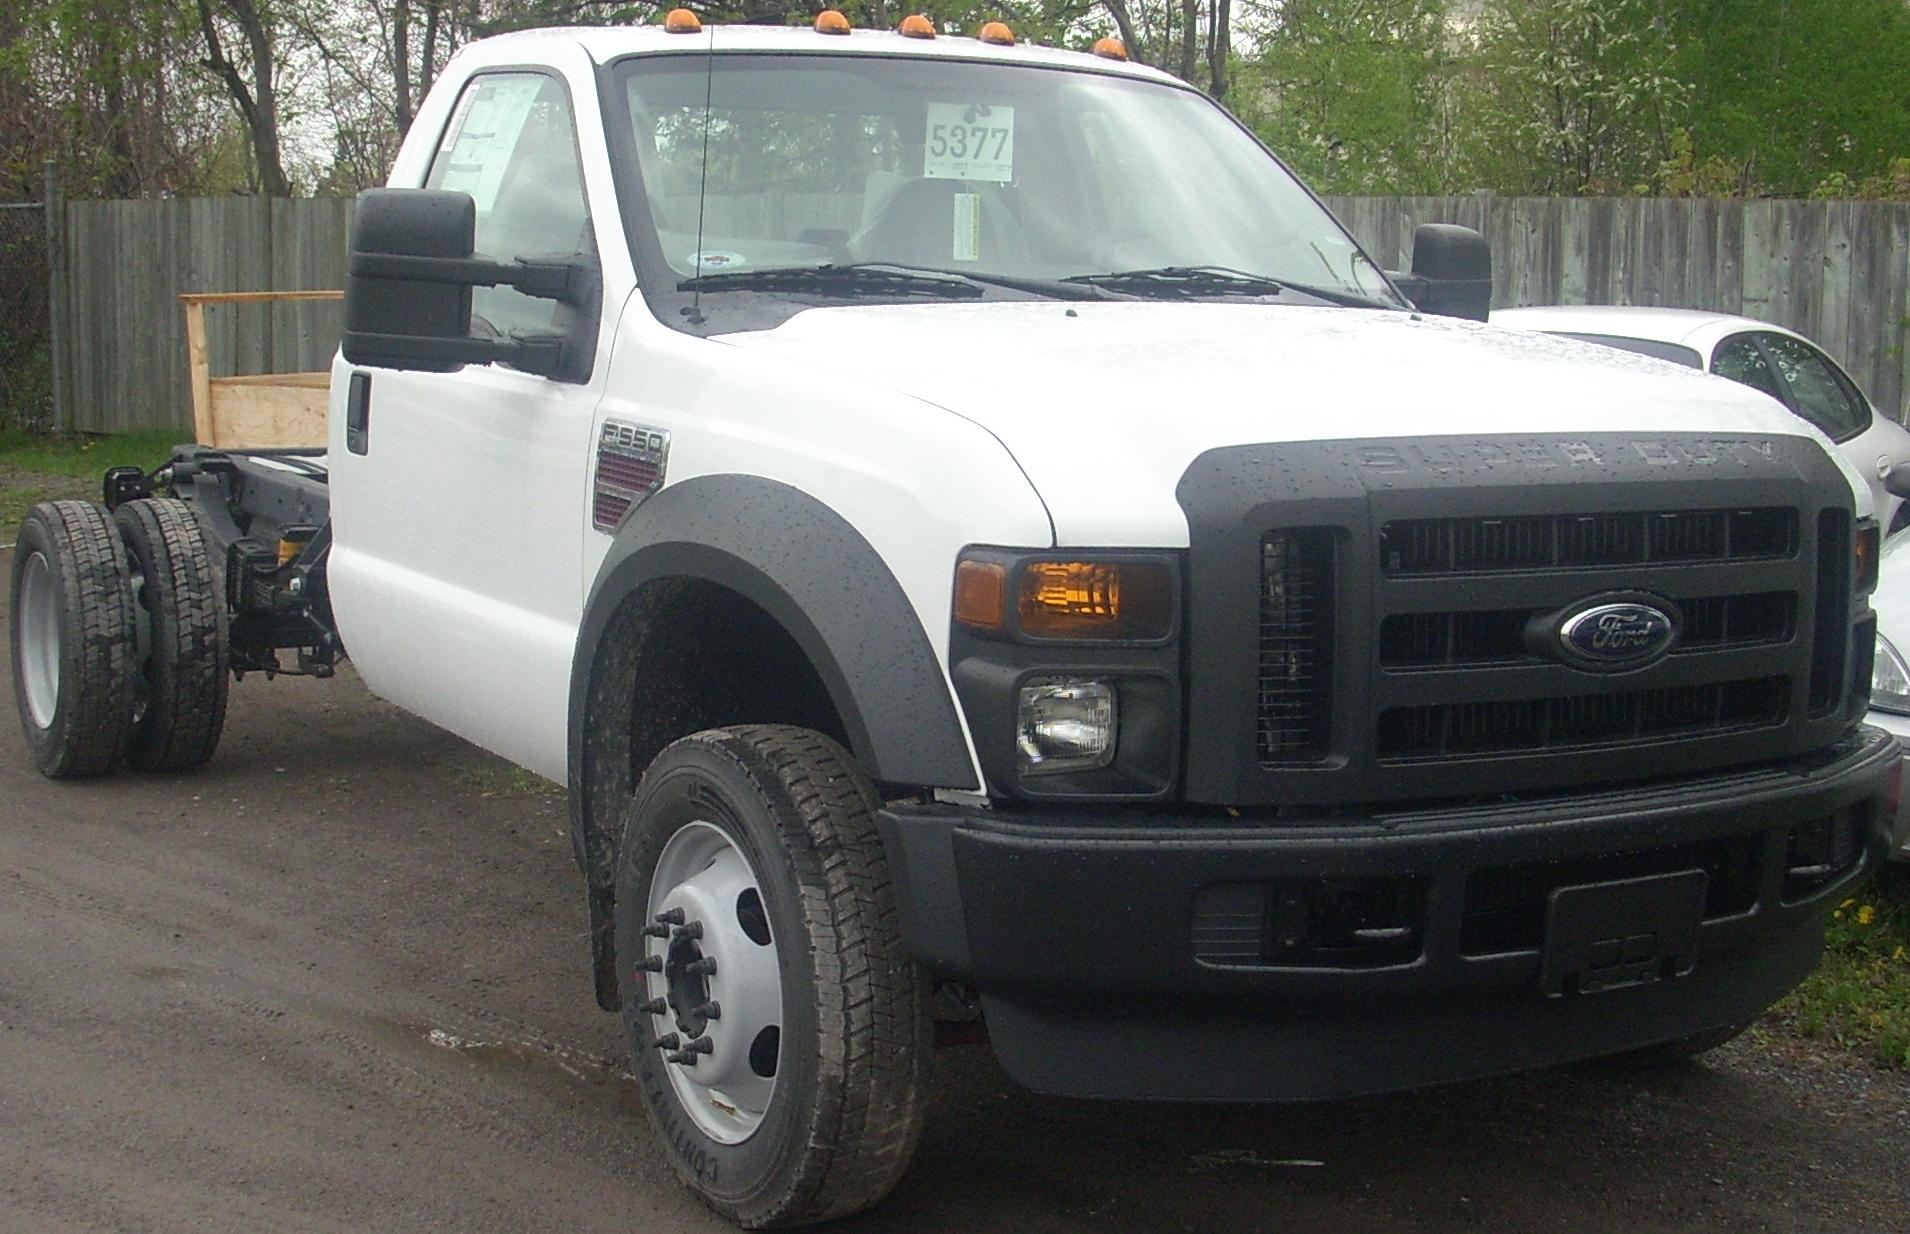 File:Ford F-550 Super Duty (Sterling Ford).JPG